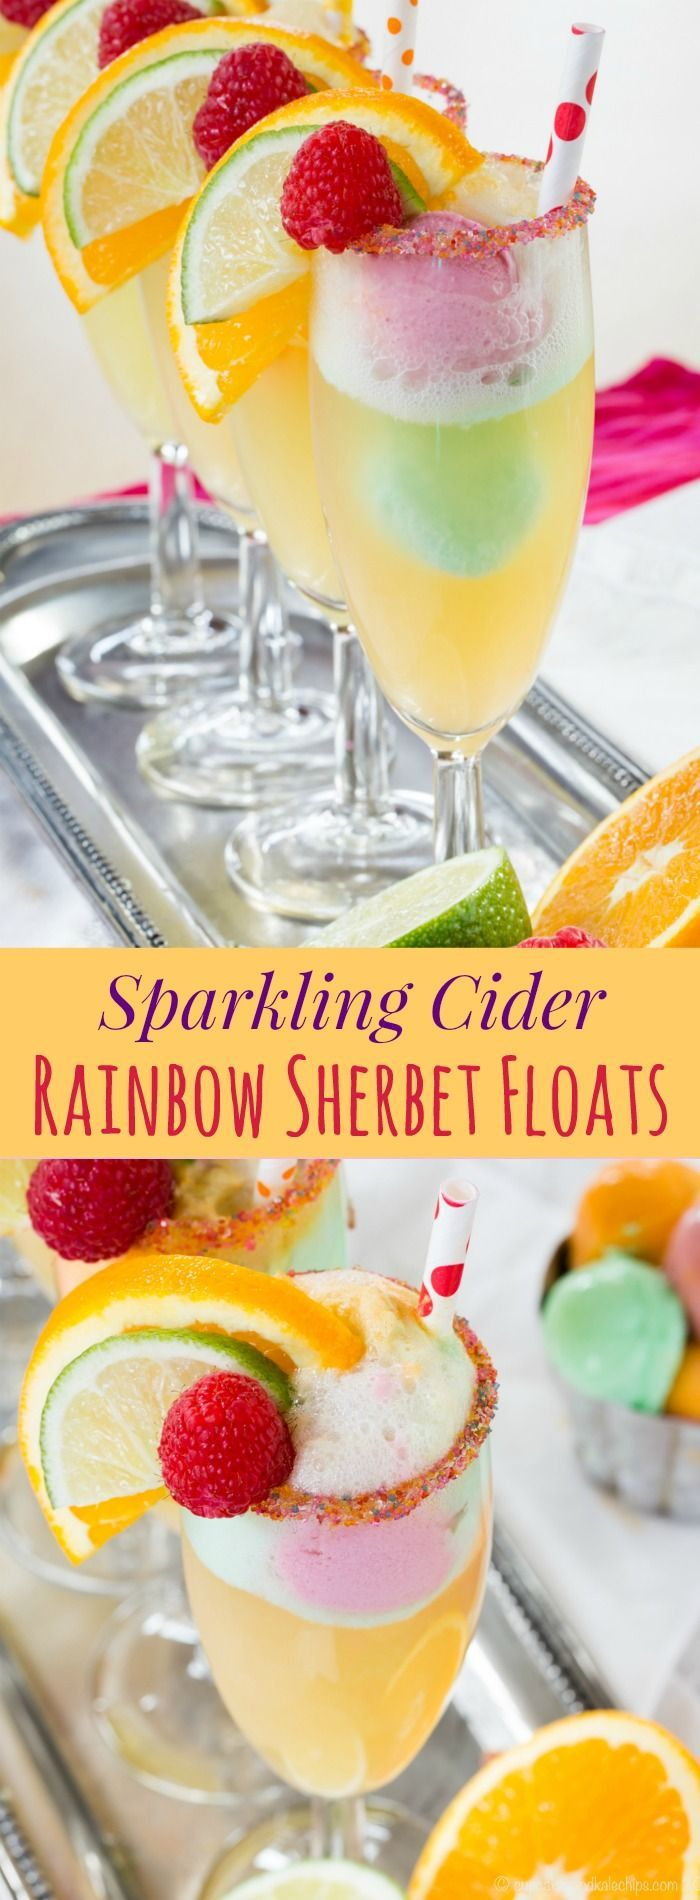 Sparkling Cider Rainbow Sherbet Floats Recipe Food Desserts And Minute Maid Homestyle Guava 1l Drinks Pinterest Recipes